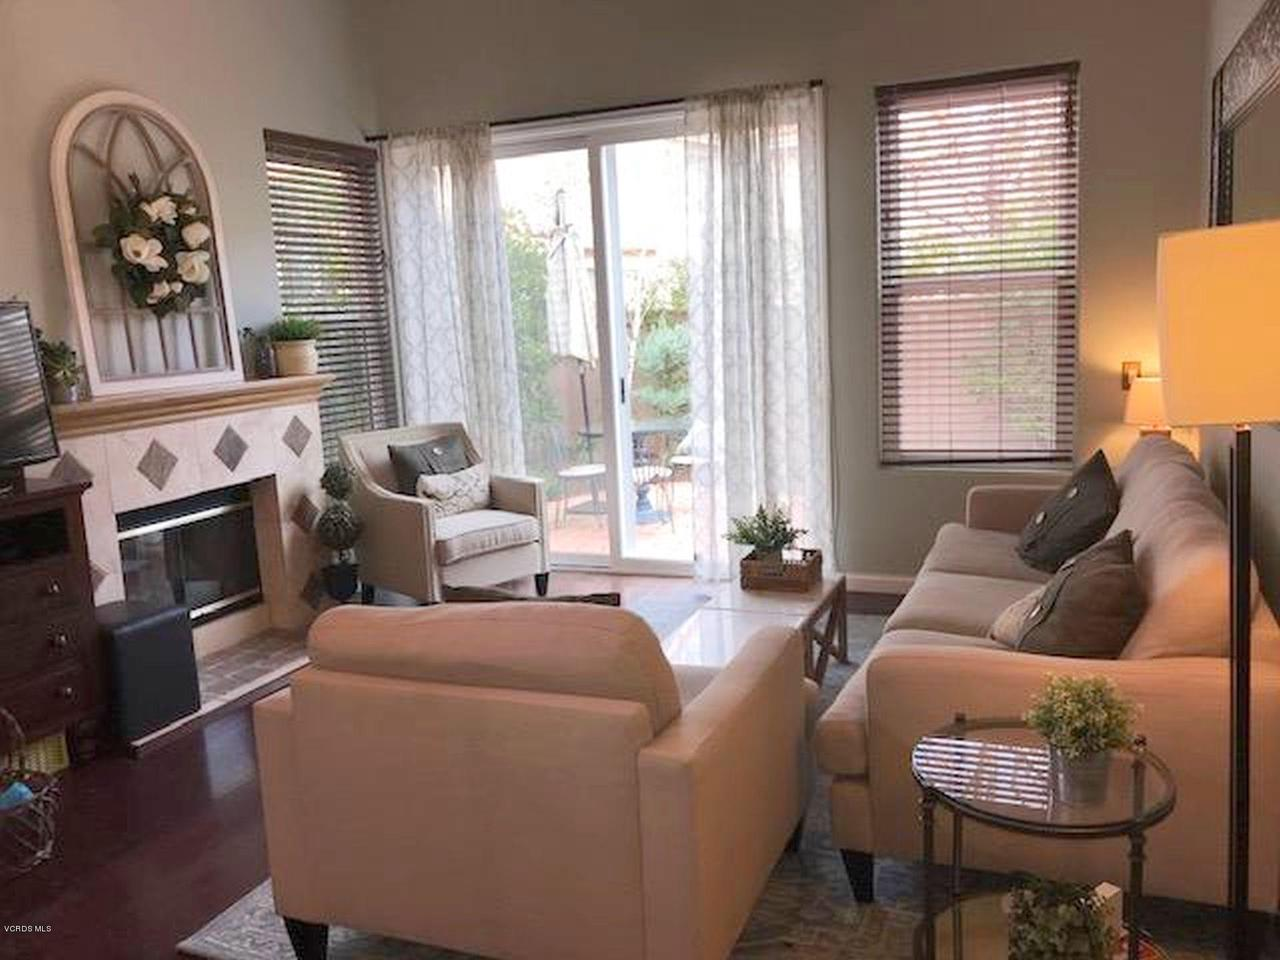 460 PAVAROTTI, Oak Park, CA 91377 - living room